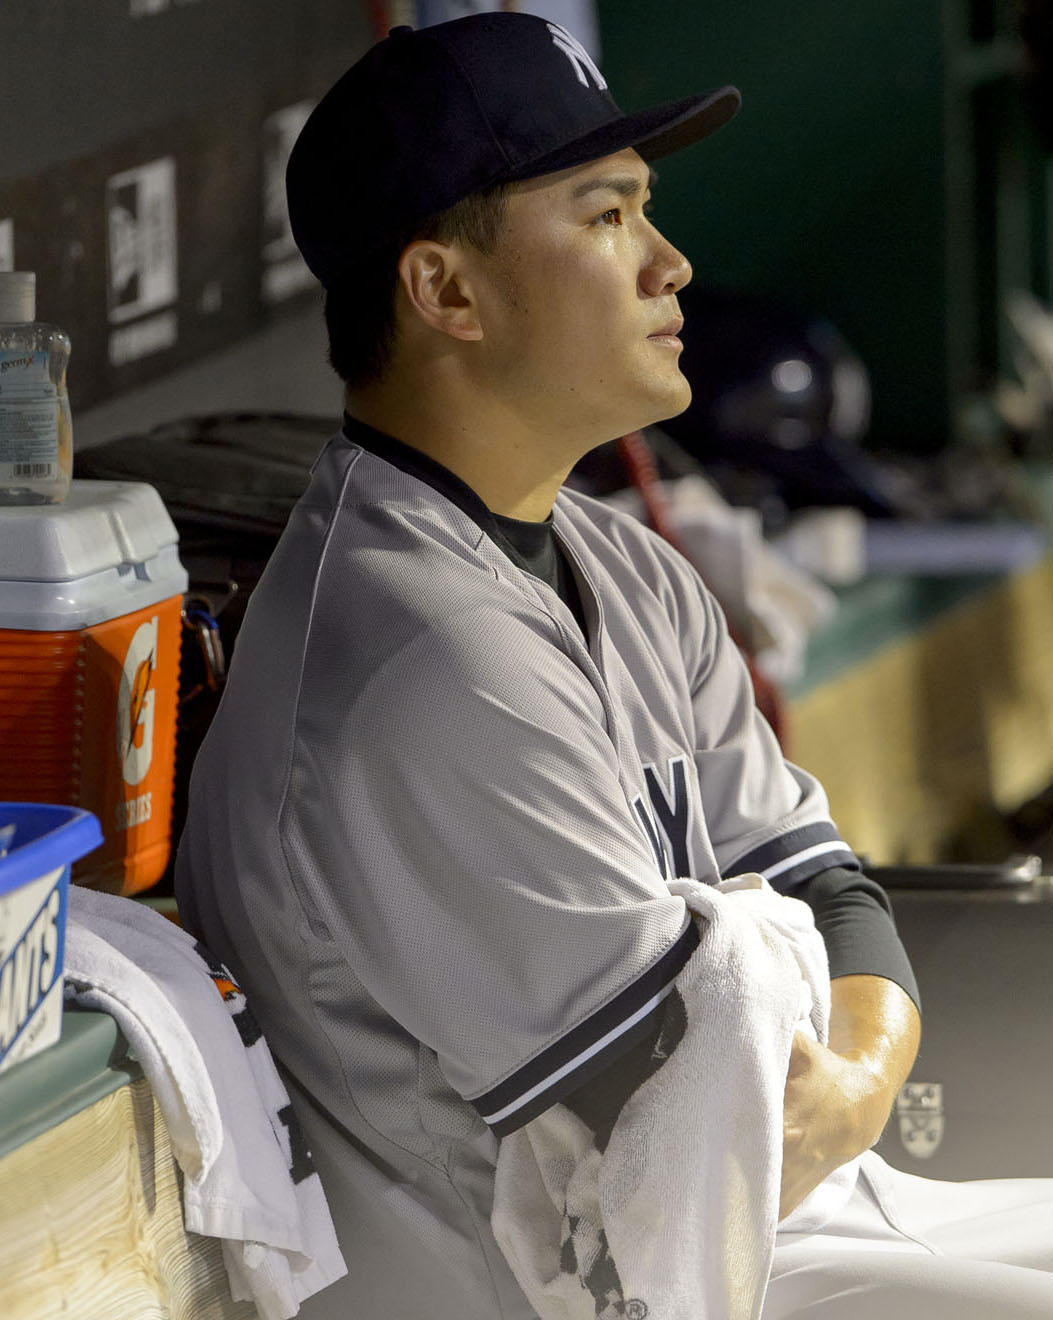 Starting pitcher Masahiro Tanaka #19 of the New York Yankees sits in the dugout after leaving the game during the seventh inning against the Cleveland Indians on July 8th, 2014